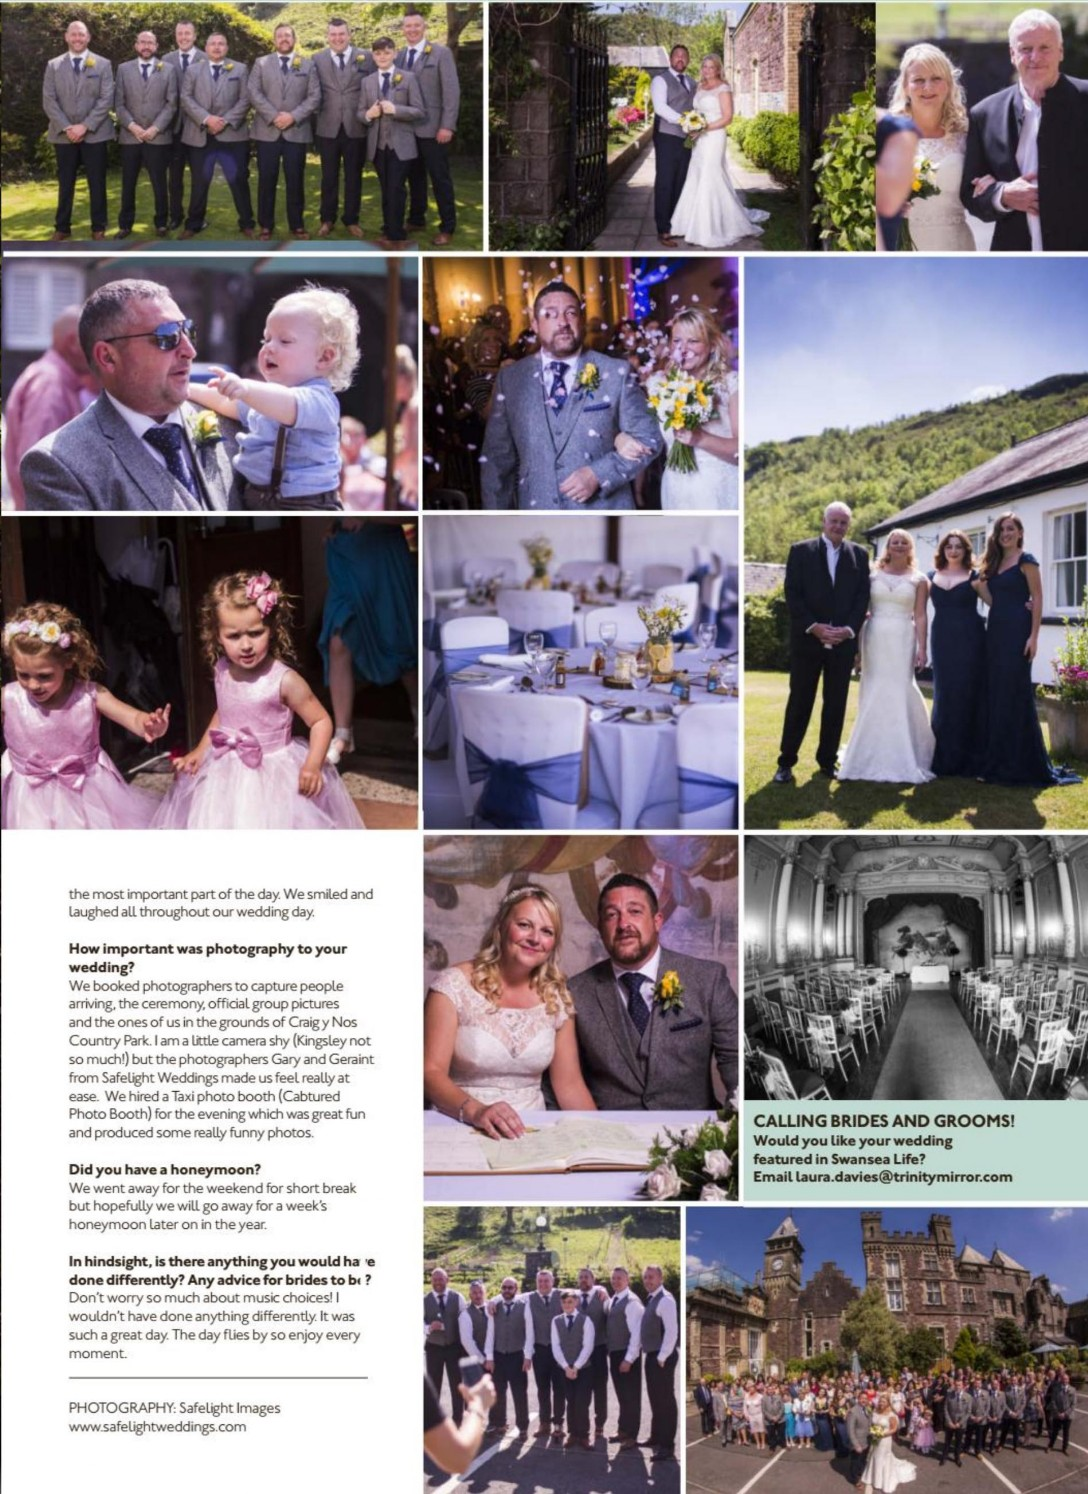 Swansea Life Magazine review of a wedding held at Craig y Nos Castle